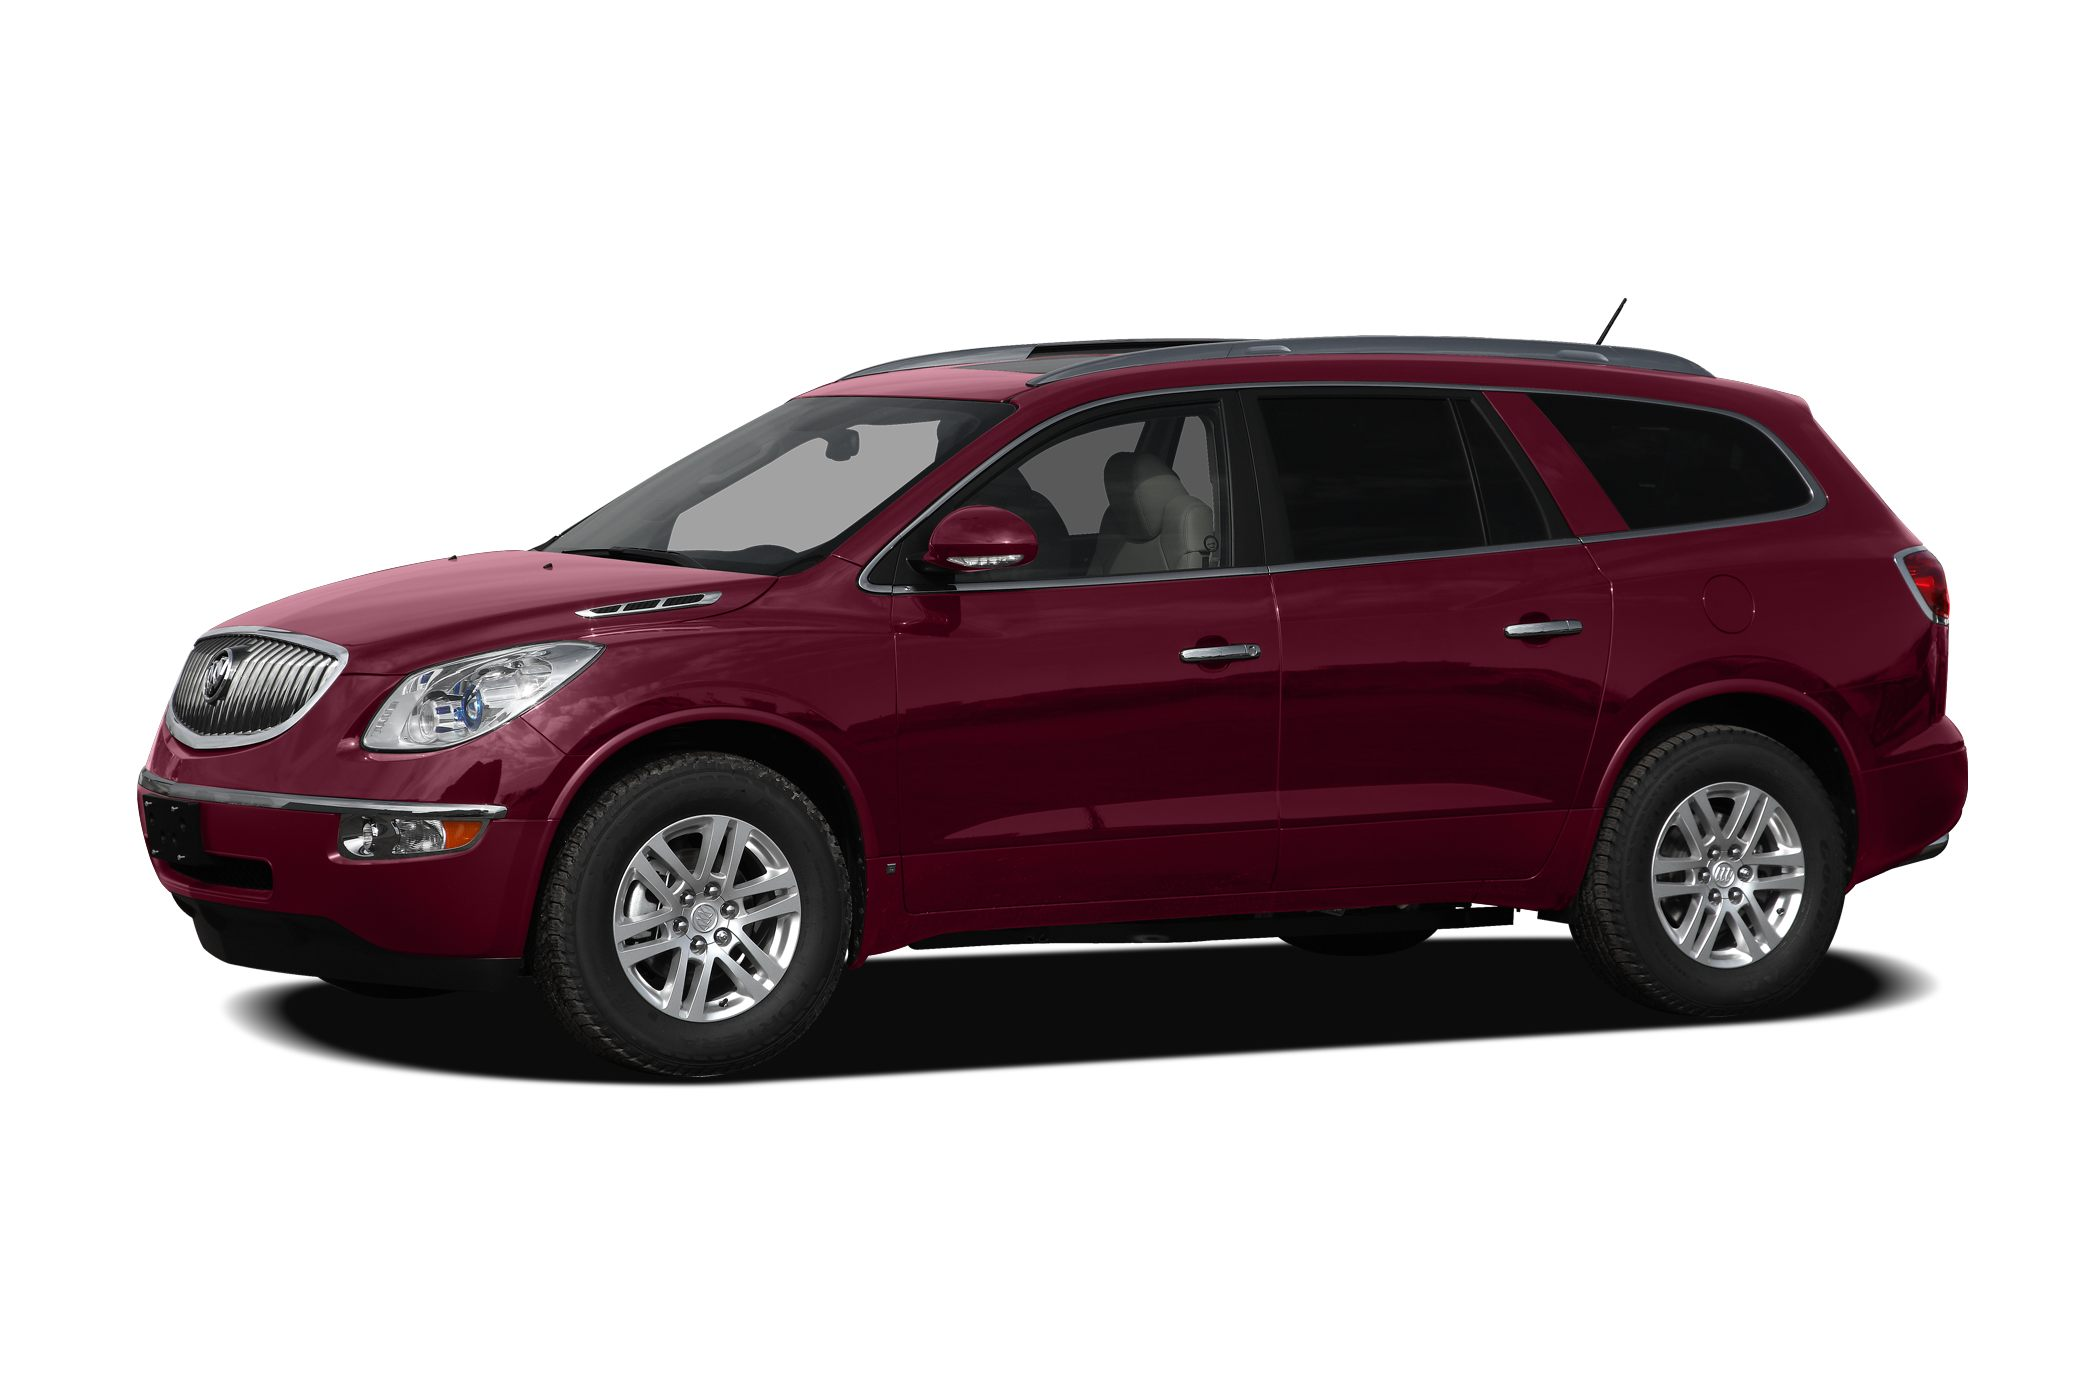 2010 Buick Enclave 2XL SUV for sale in Sumter for $20,900 with 80,626 miles.